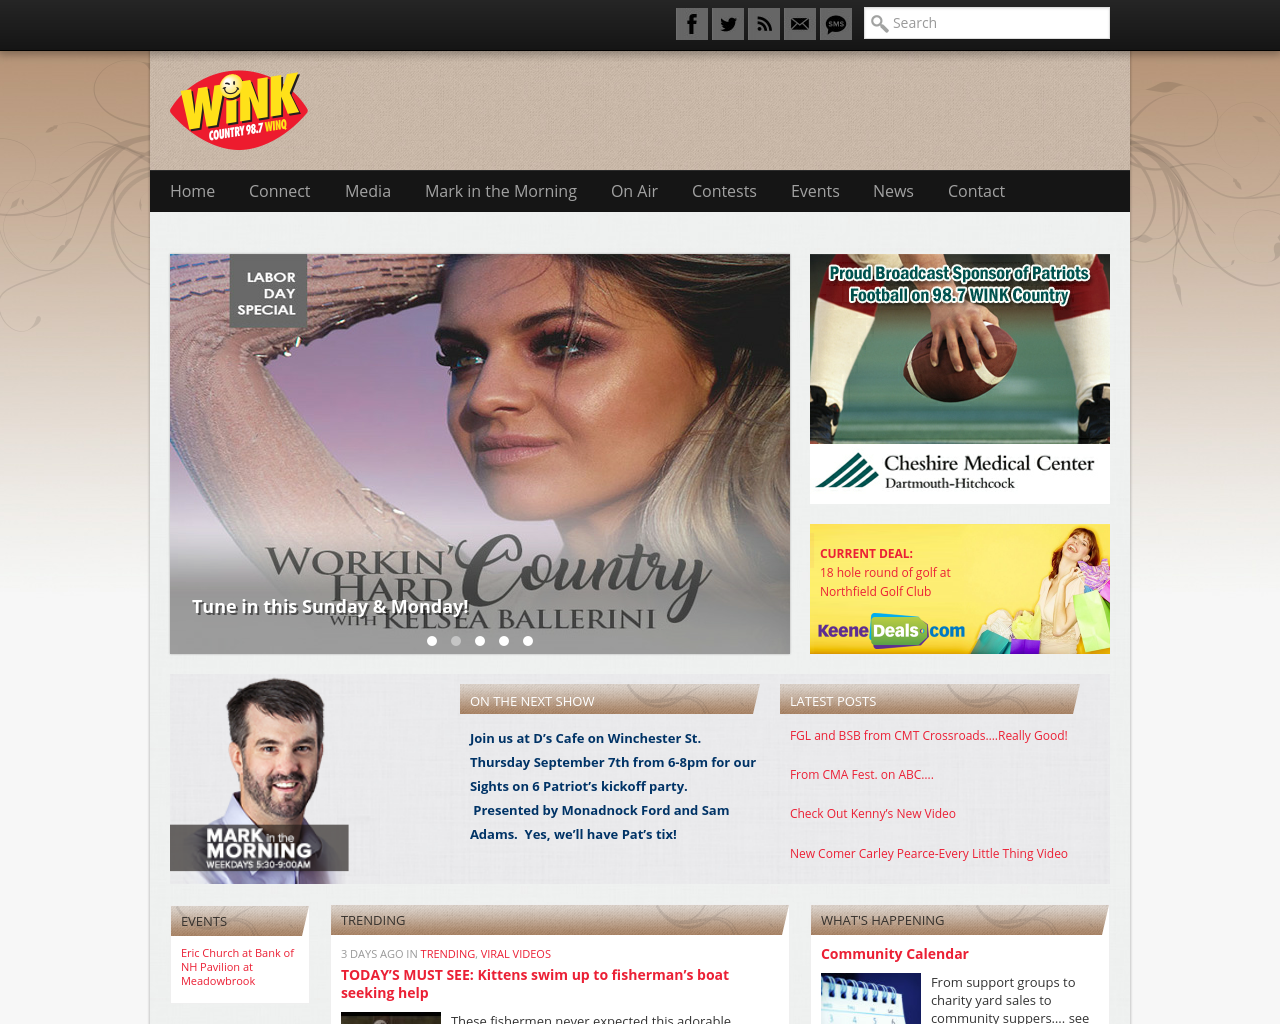 Wink-Country-98.7-WINQ-Advertising-Reviews-Pricing